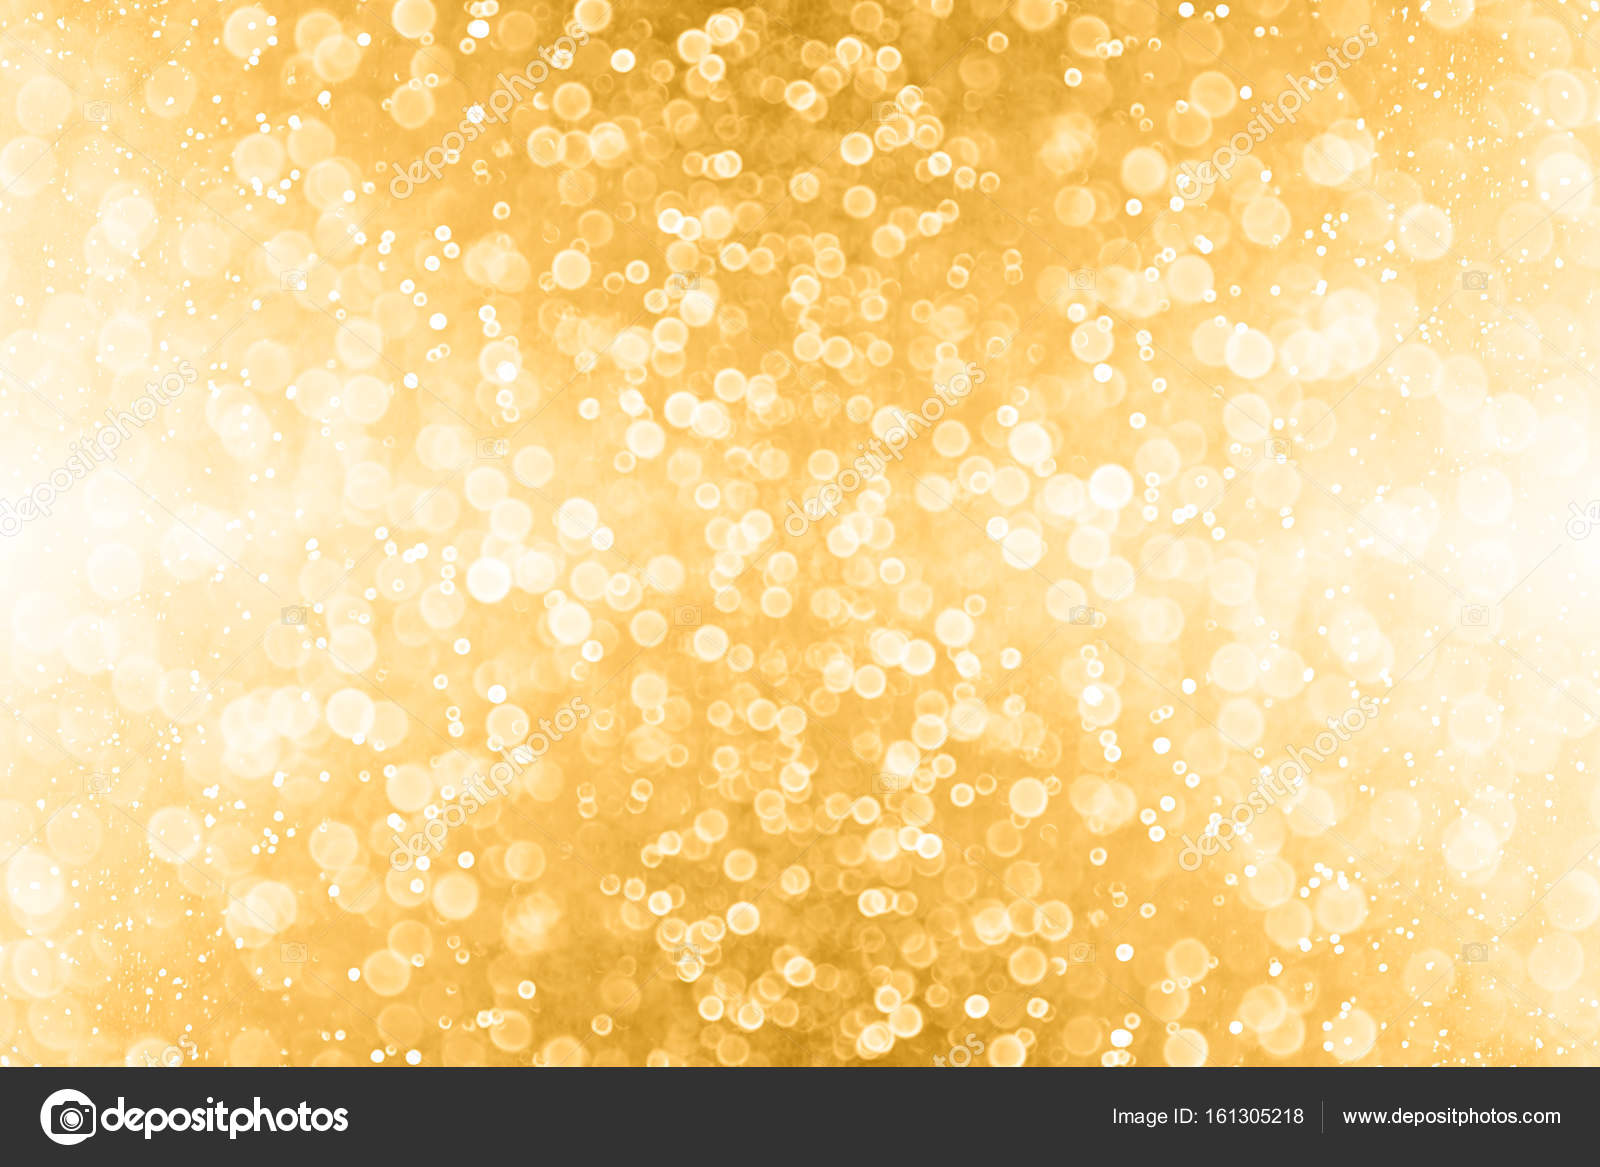 Abstract Gold Glitter Sparkle Confetti Background Or Golden Party Invite For Happy Birthday 50th Anniversary Champagne Color Banner New Years Eve Bash